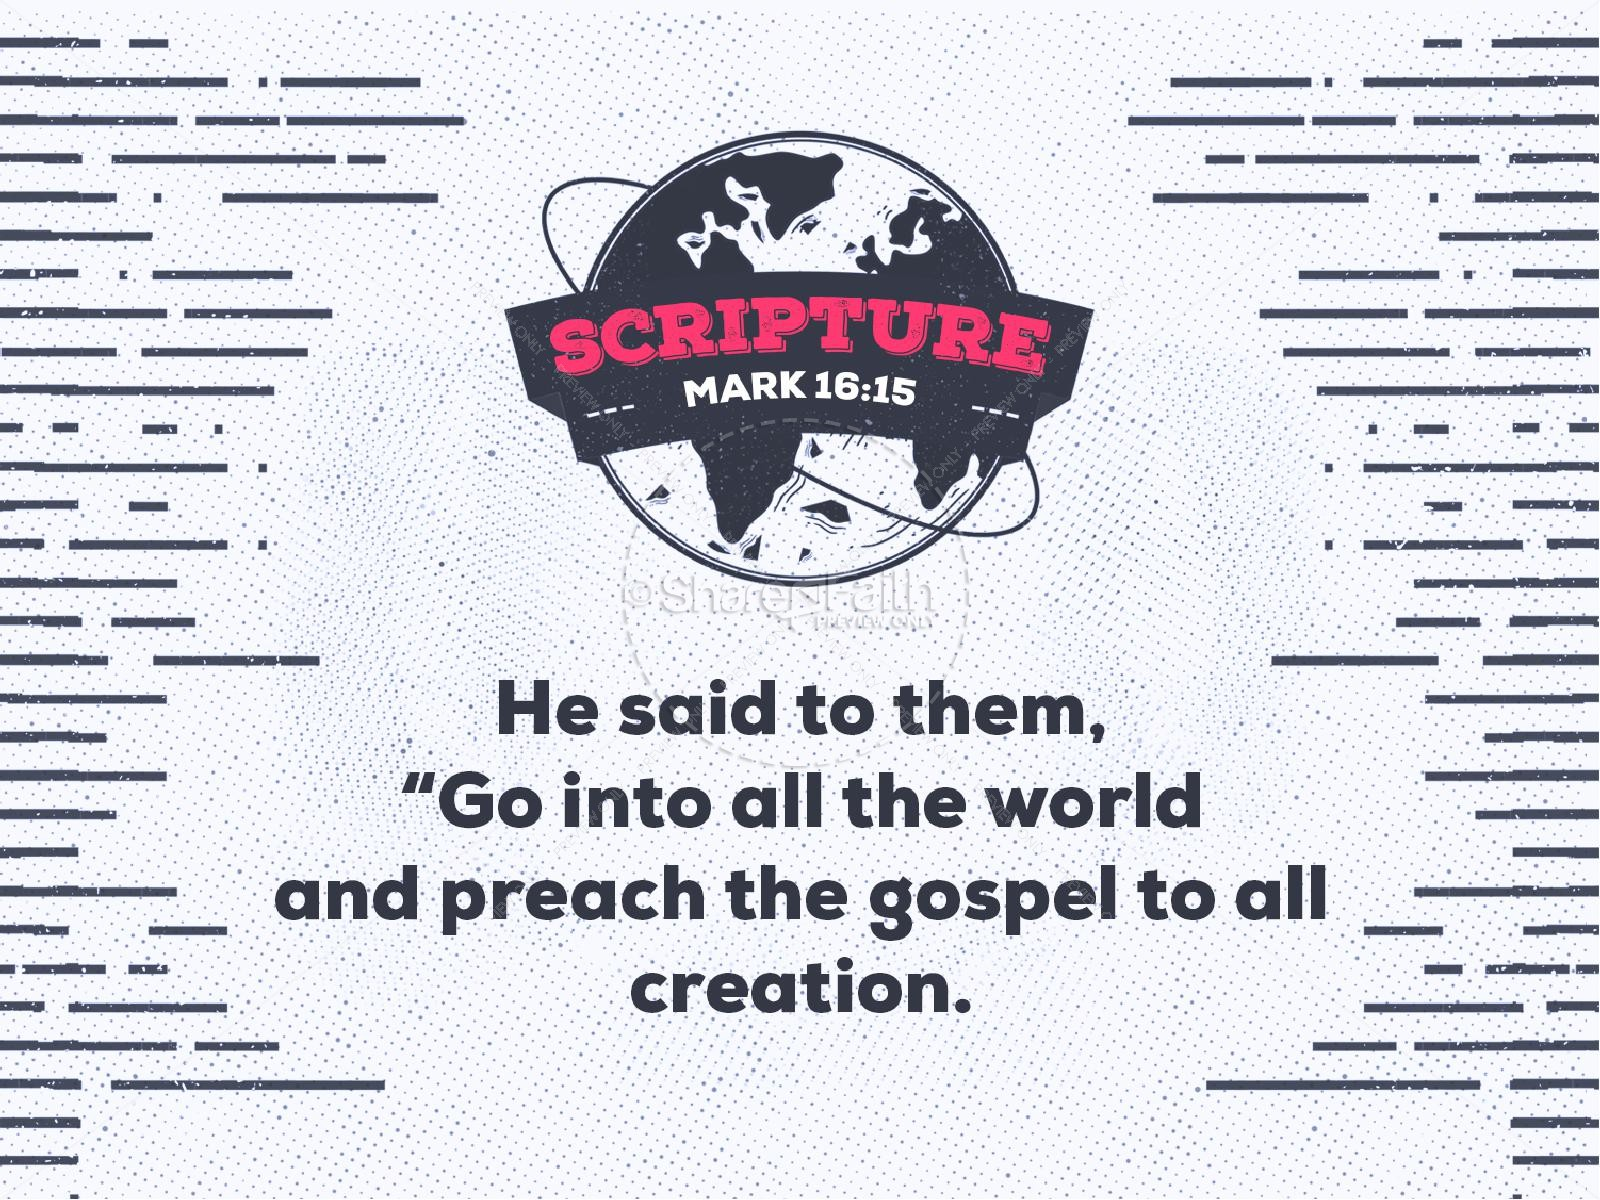 Missions Sunday Church Service Graphic | slide 4